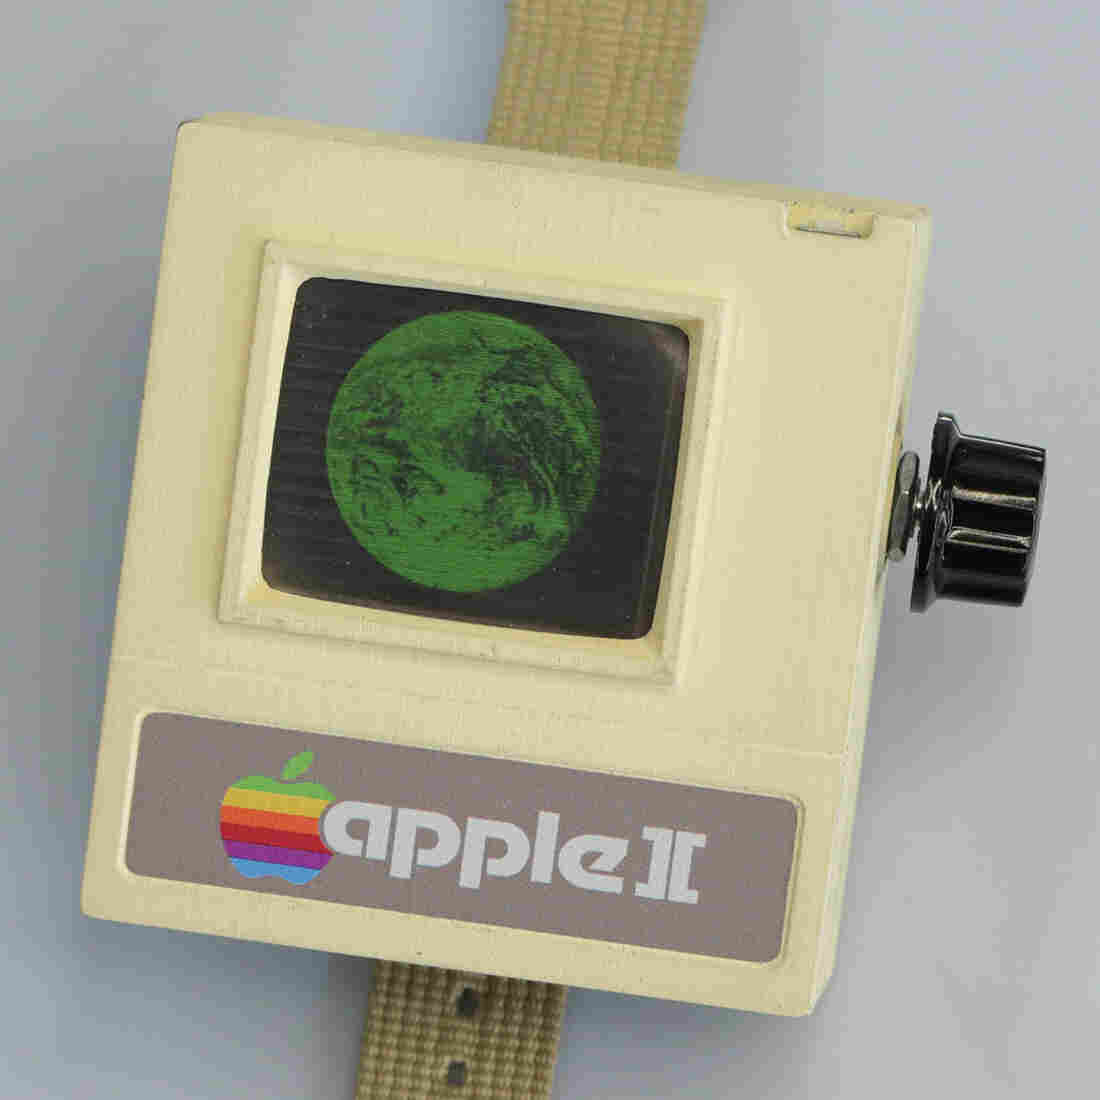 A DIY Dream: What If Apple Had Made A Watch In 1985?